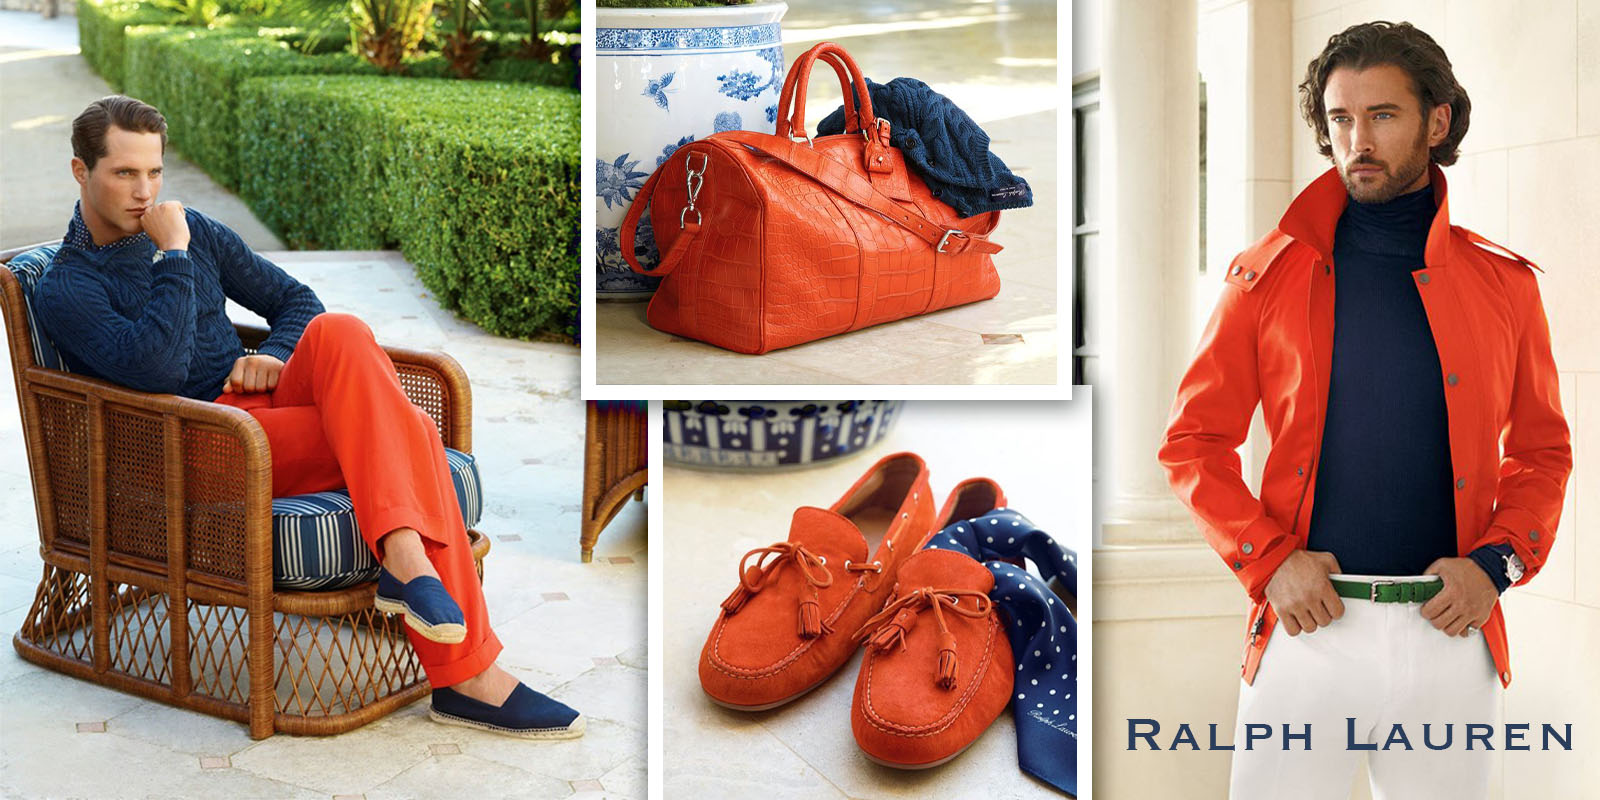 Create a bright spring mood with Ralph Lauren